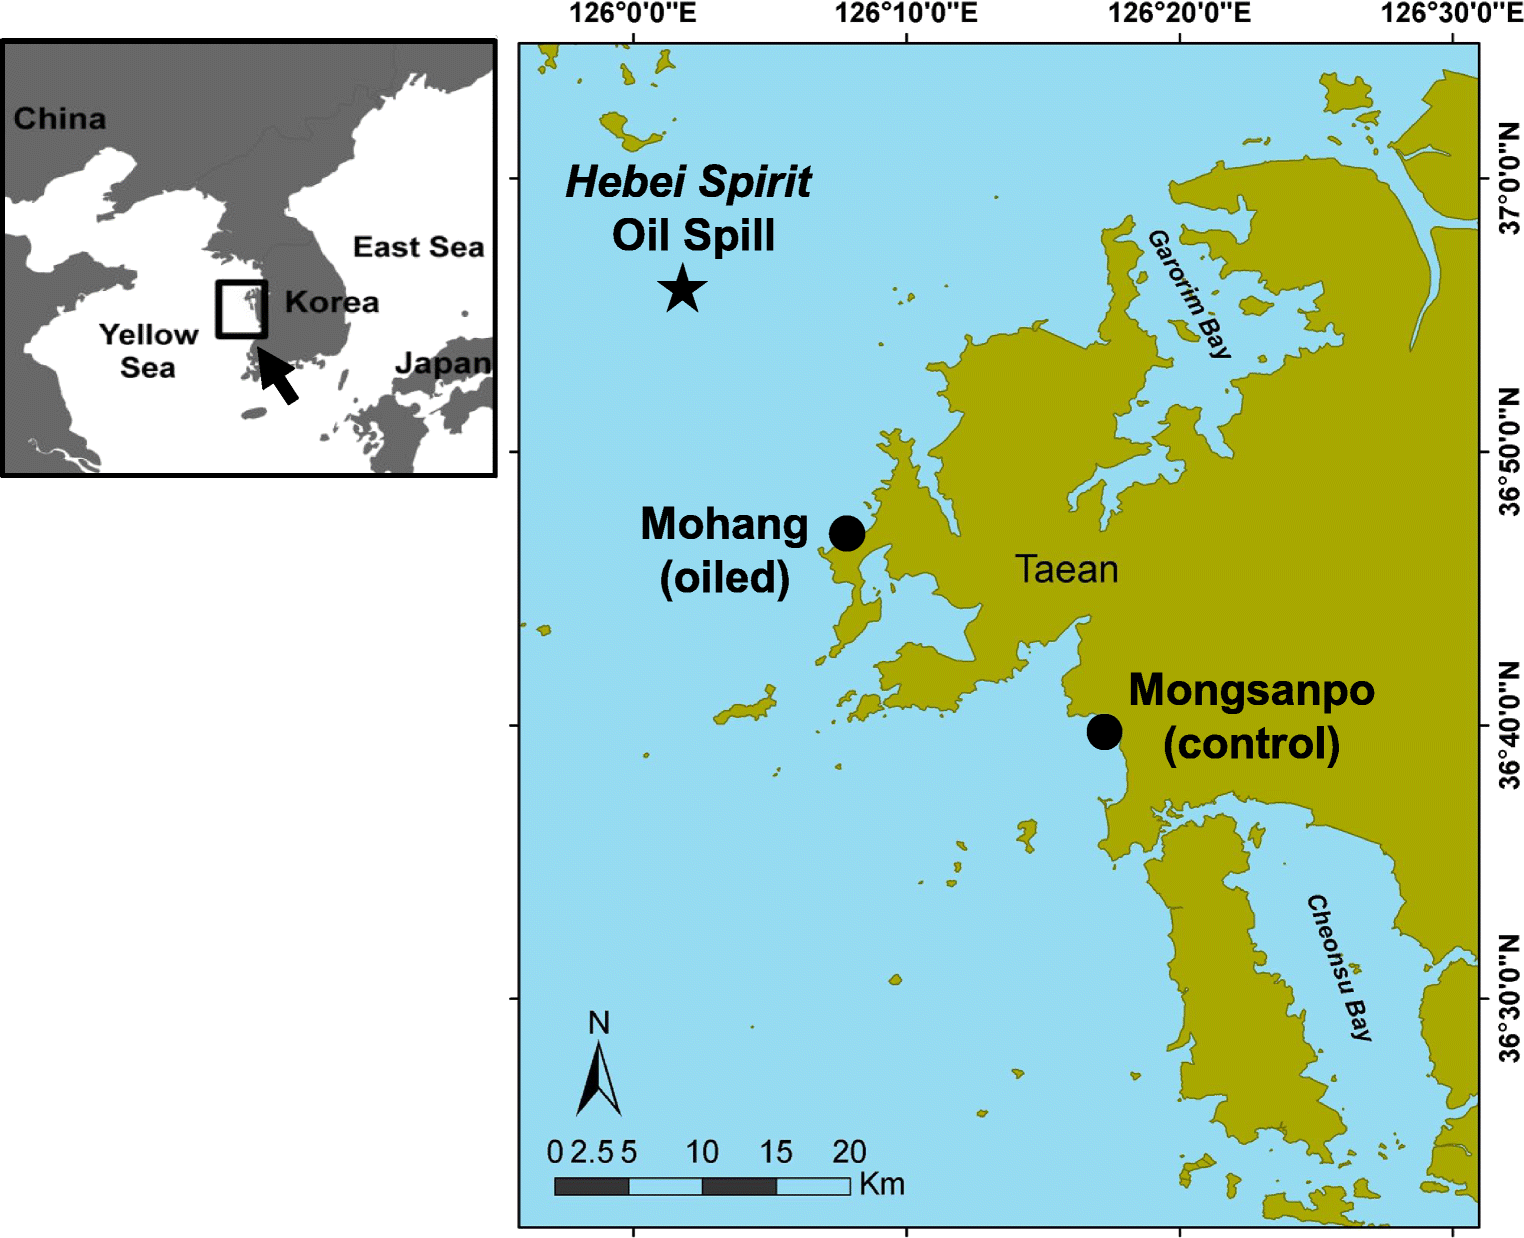 Effect of the Hebei Spirit Oil Spill on the Condition